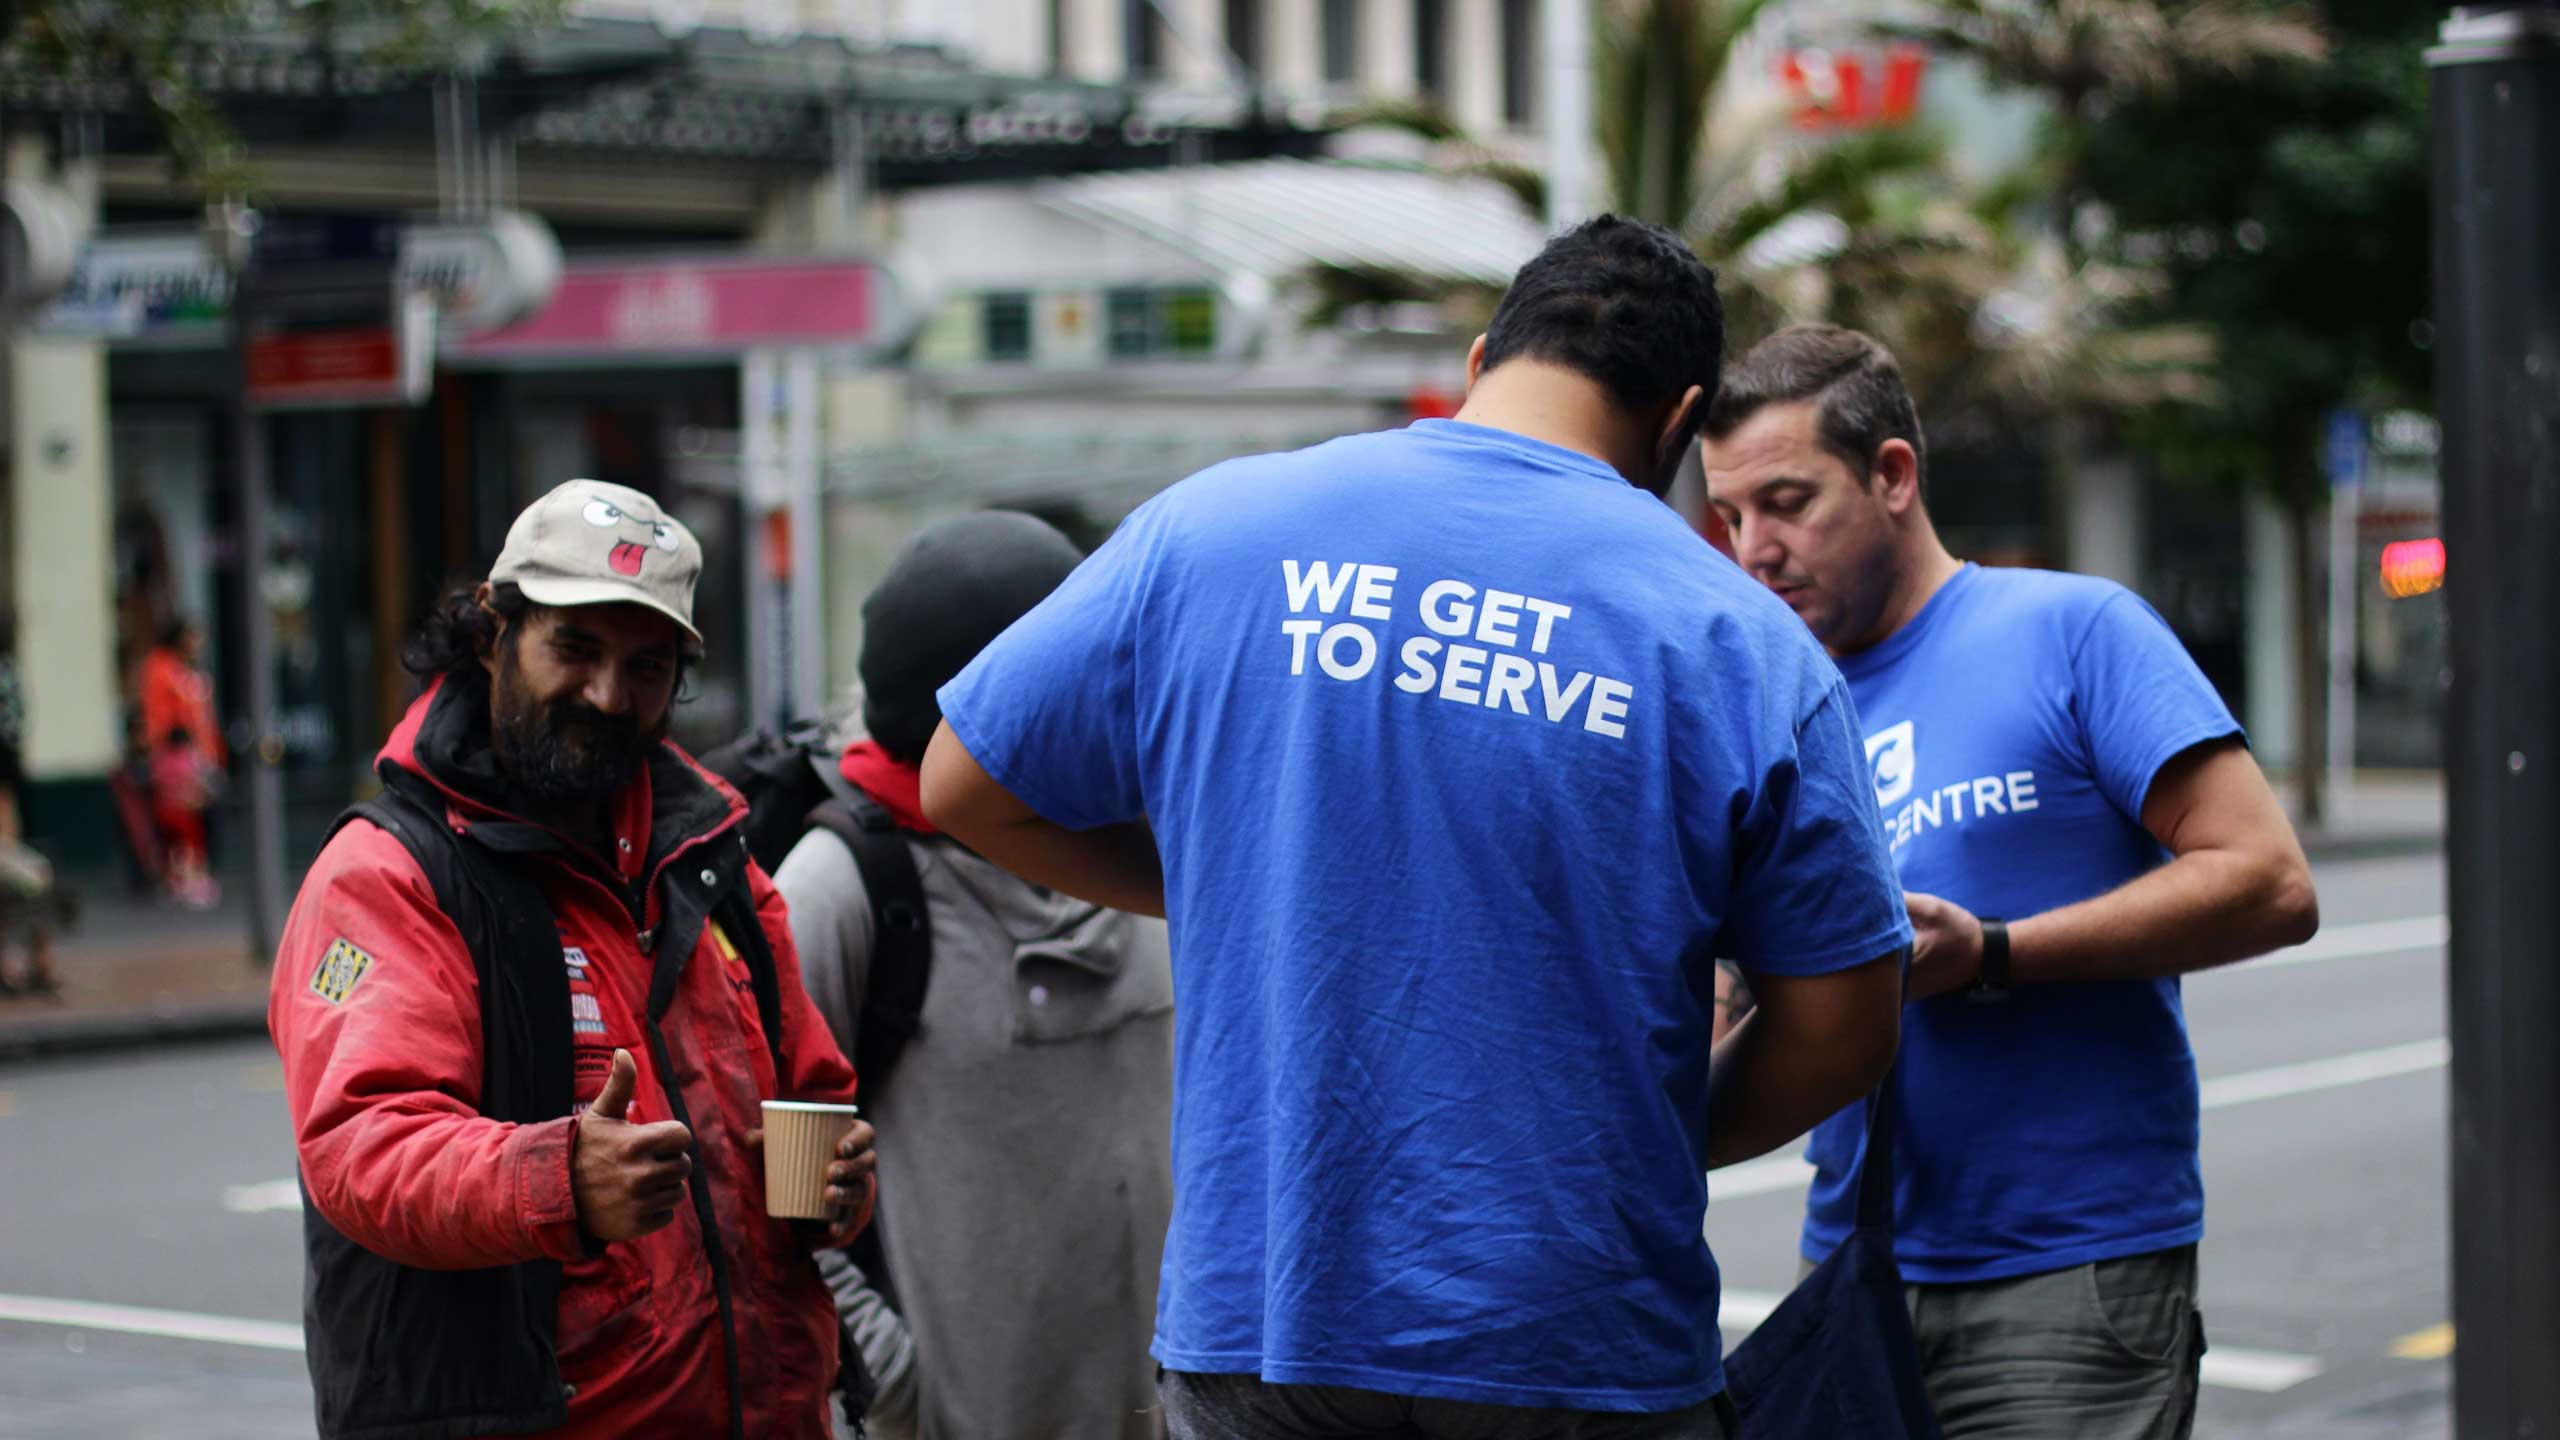 Dream Centre staff serving in Auckland city